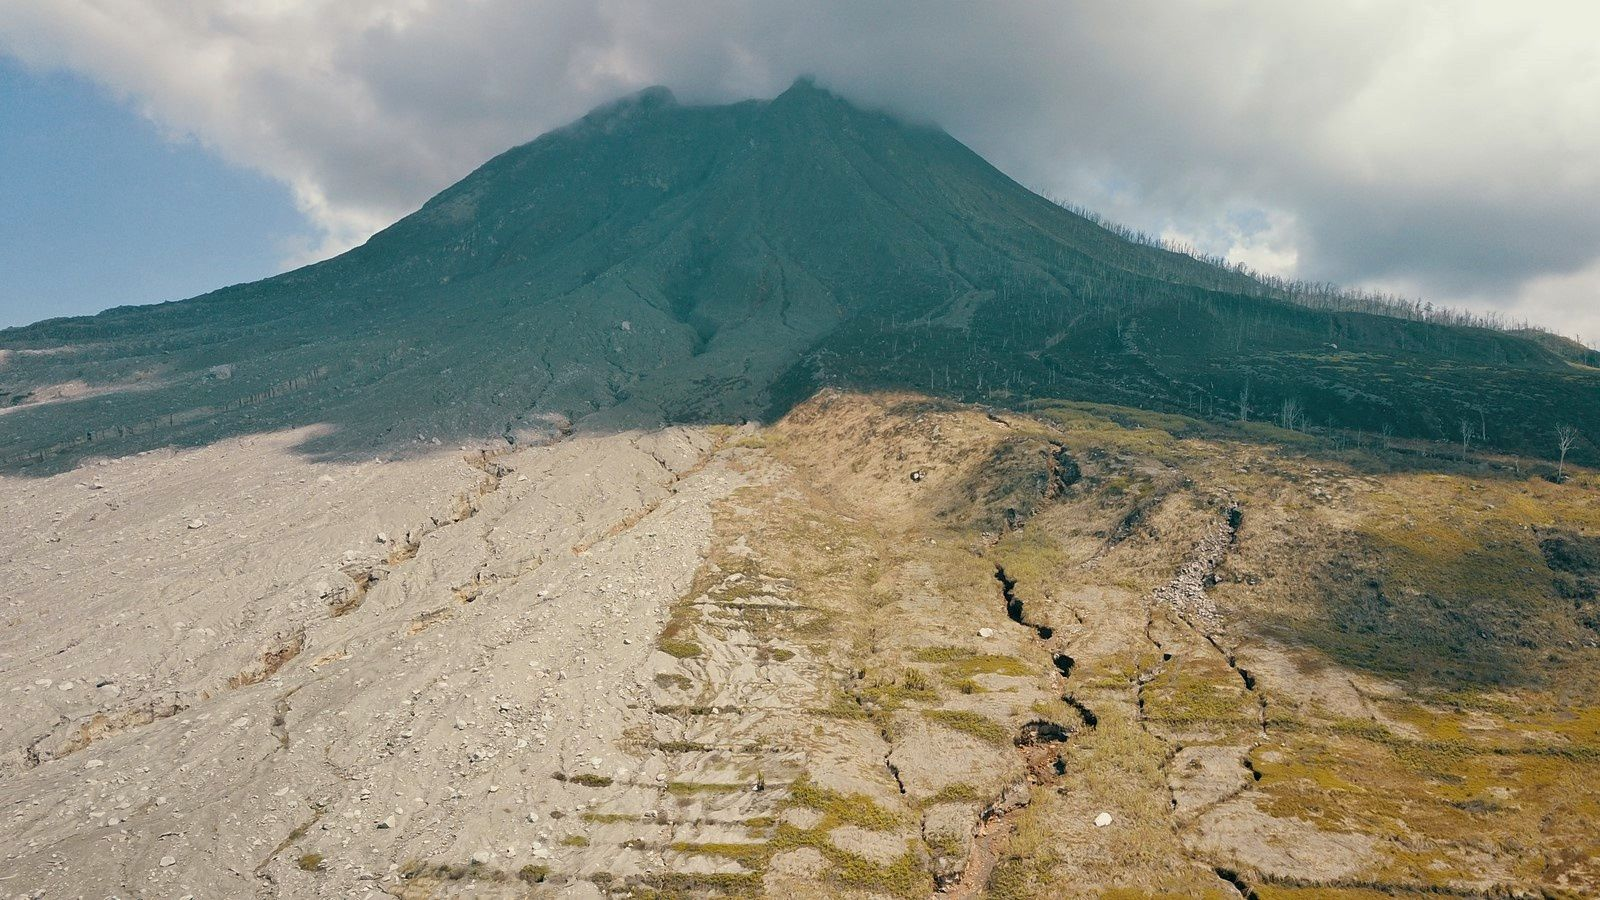 Sinabung - deposits of pyroclastic flows on the eastern slope - photo © Thierry SLUYS on 15.07.2019